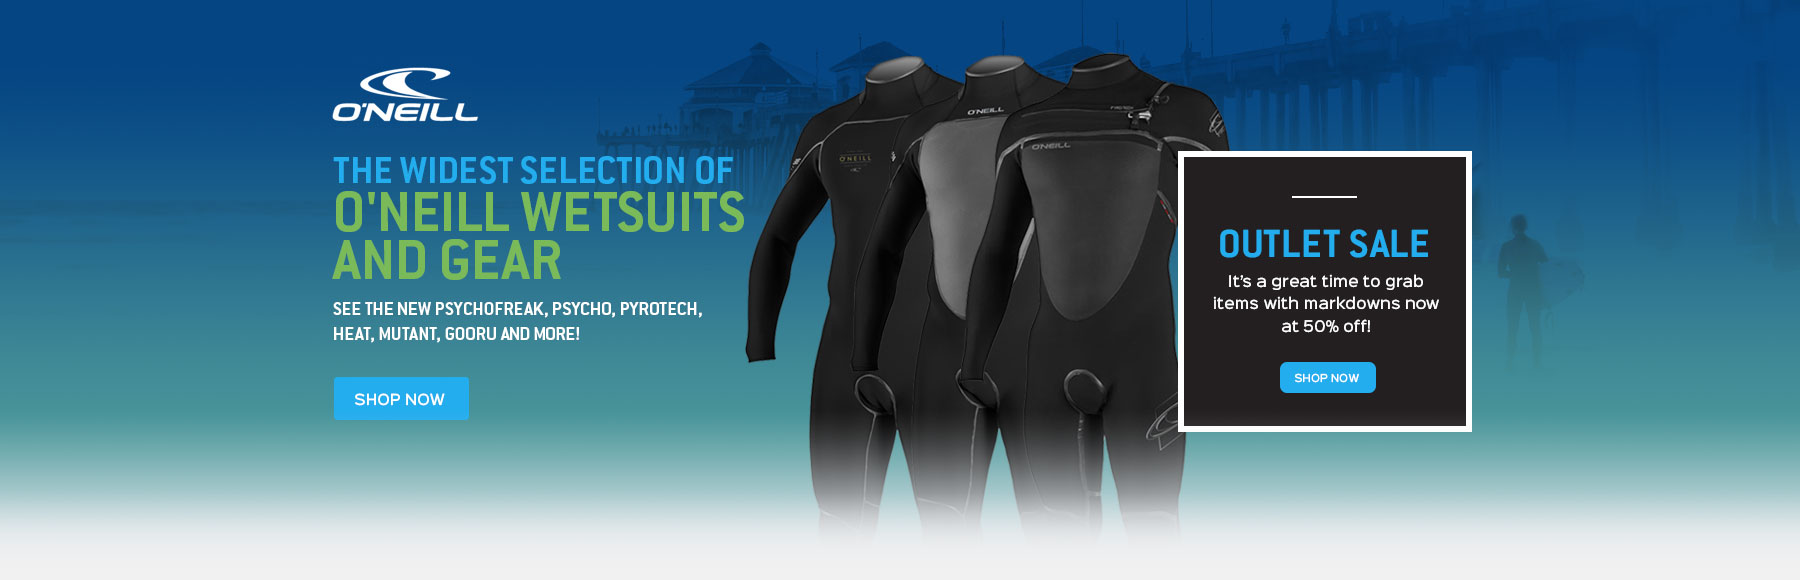 Oneill Wetsuit Sale